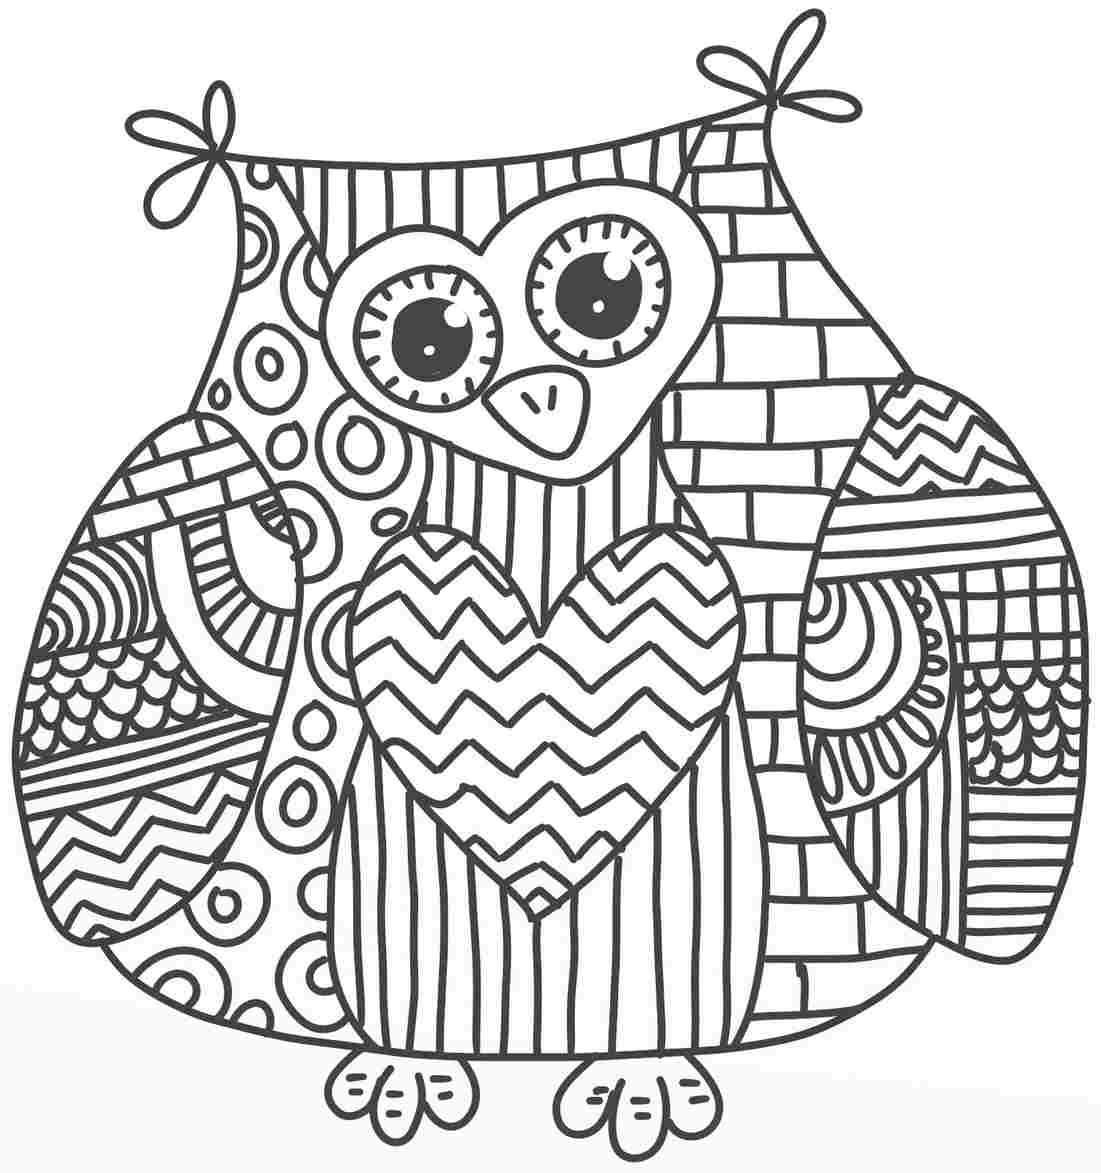 Printable Coloring Pages For Adults With Dementia Coloring Page Owl Coloring Pages Animal Coloring Pages Mandala Coloring Pages